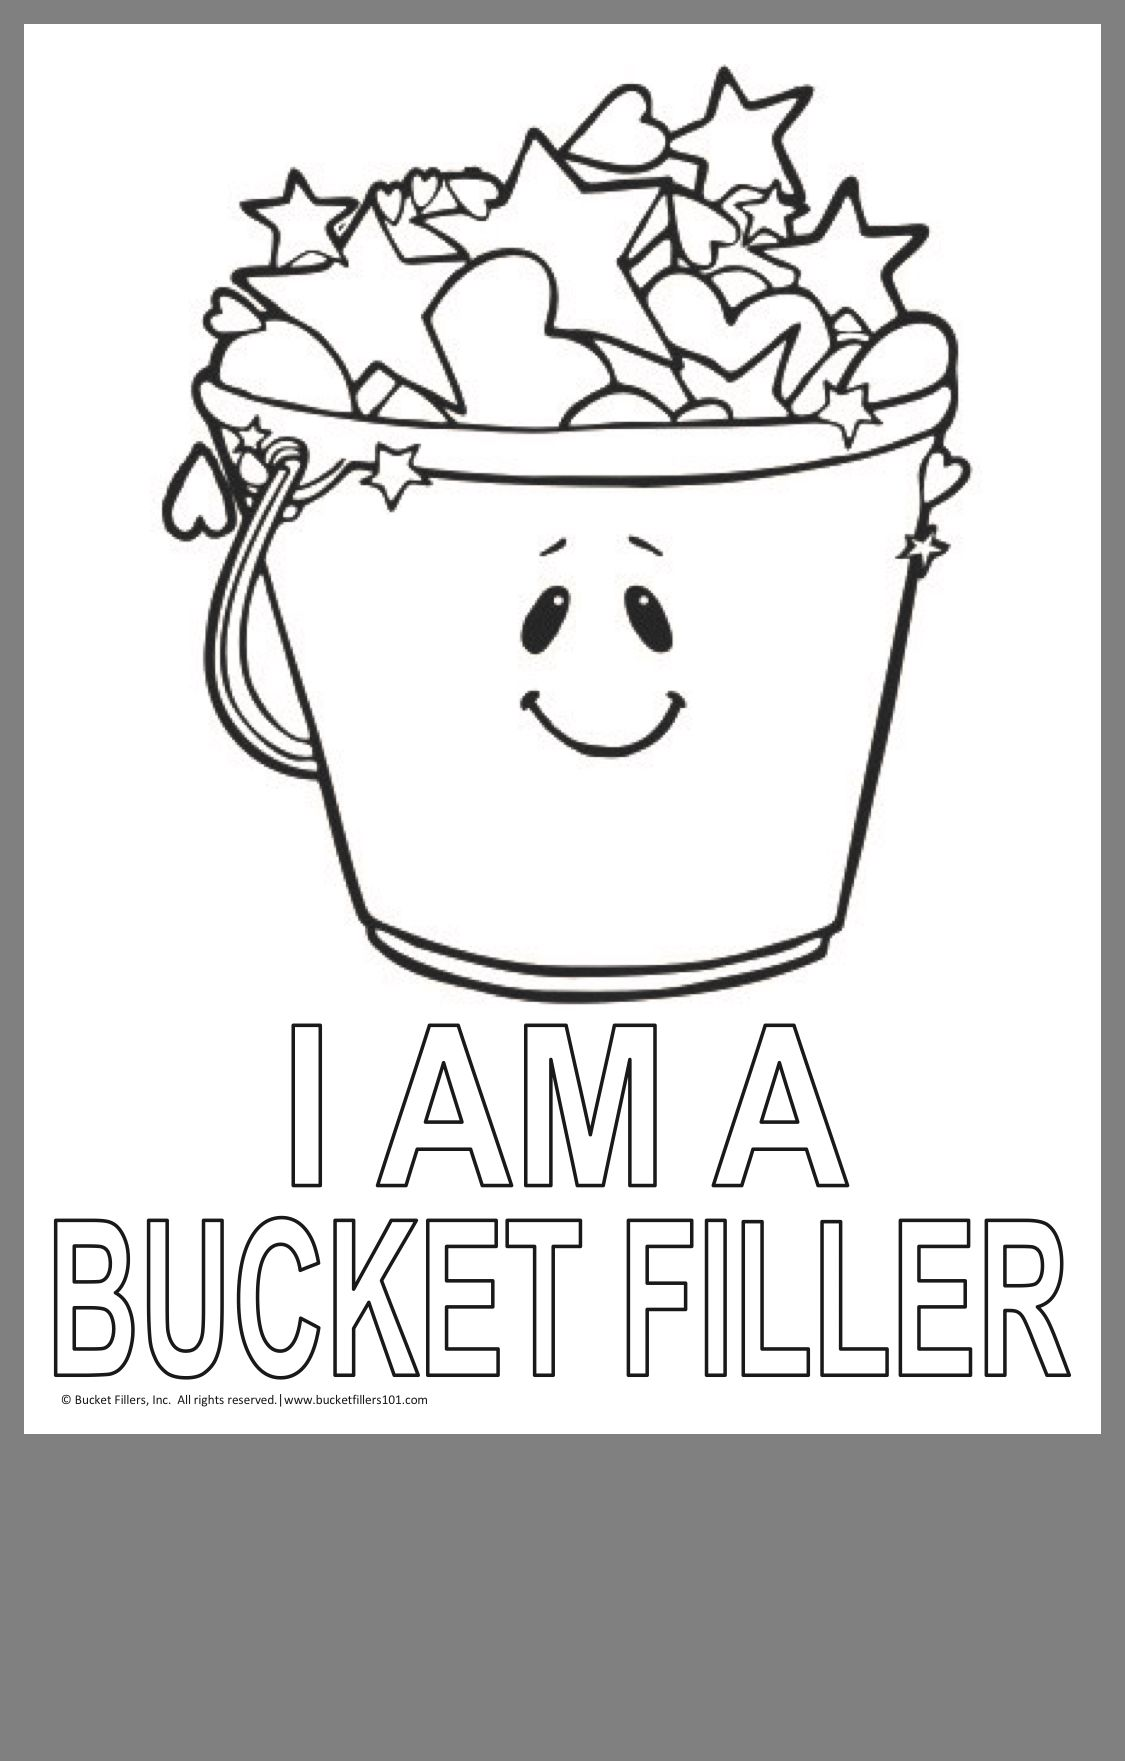 Positive School Culture Image By Sharla Bucket Filler Bucket